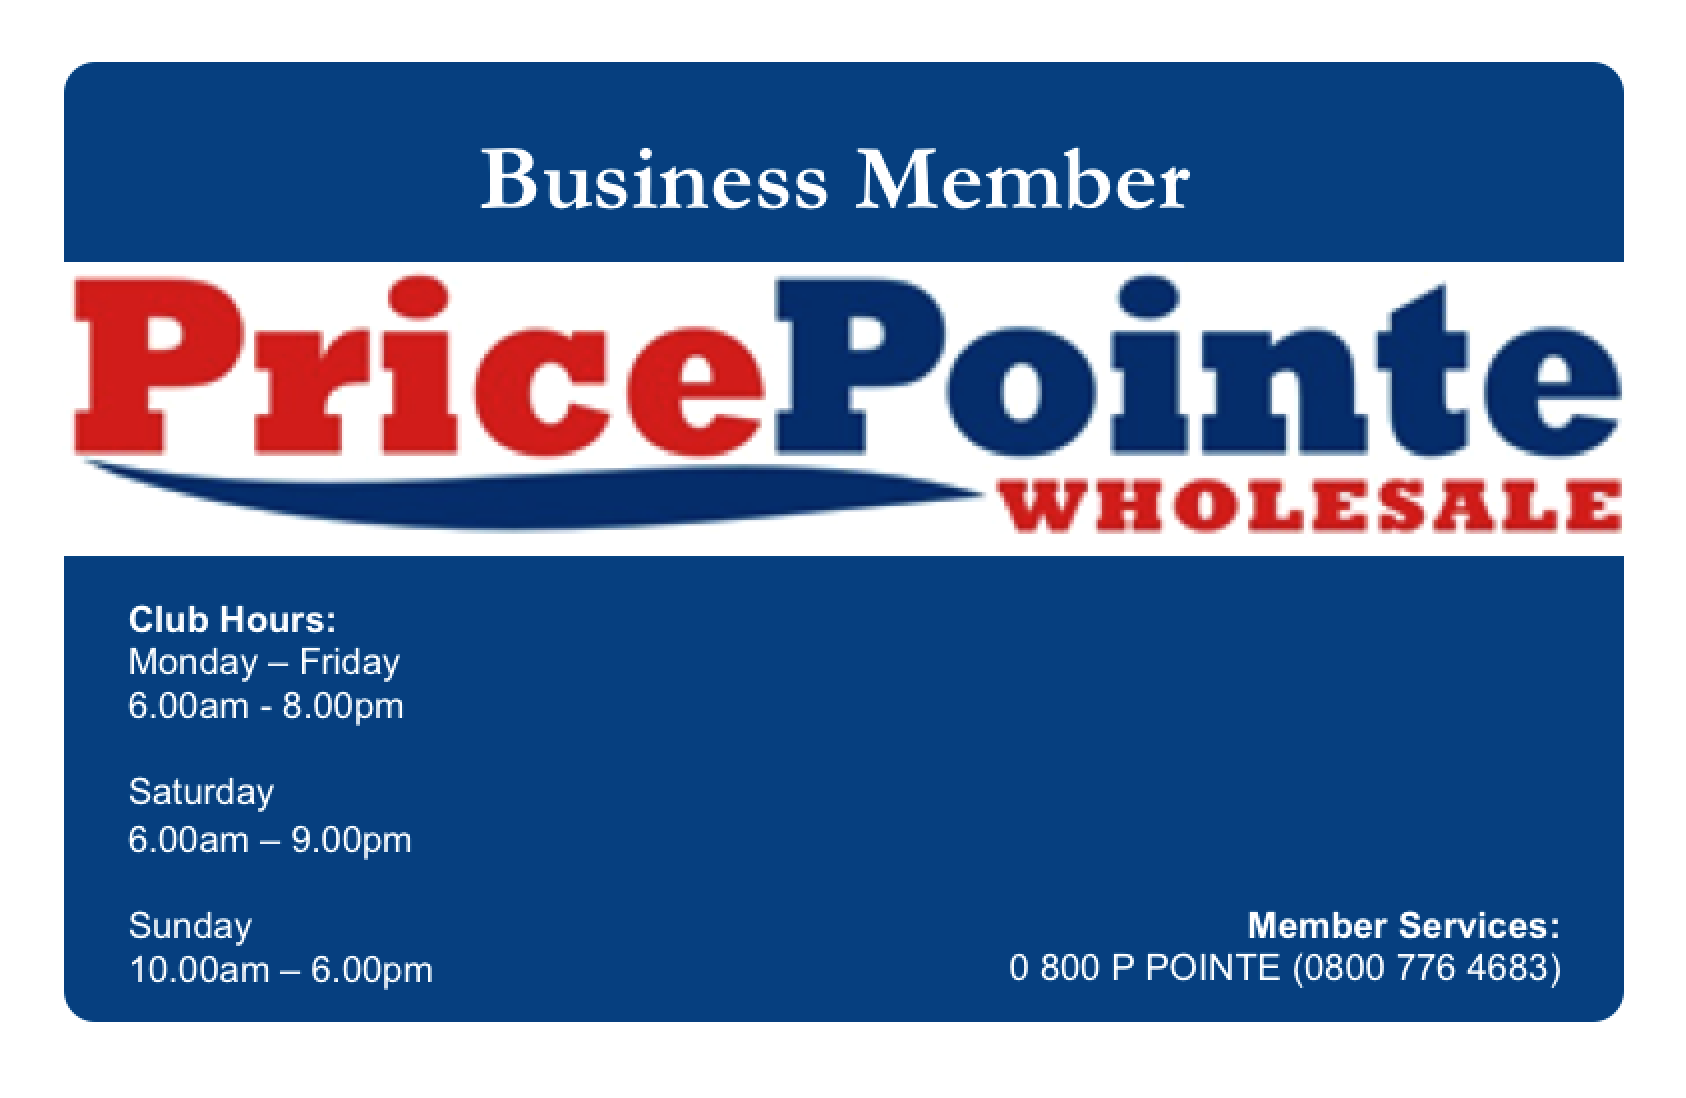 Business Membership PricePointe Club